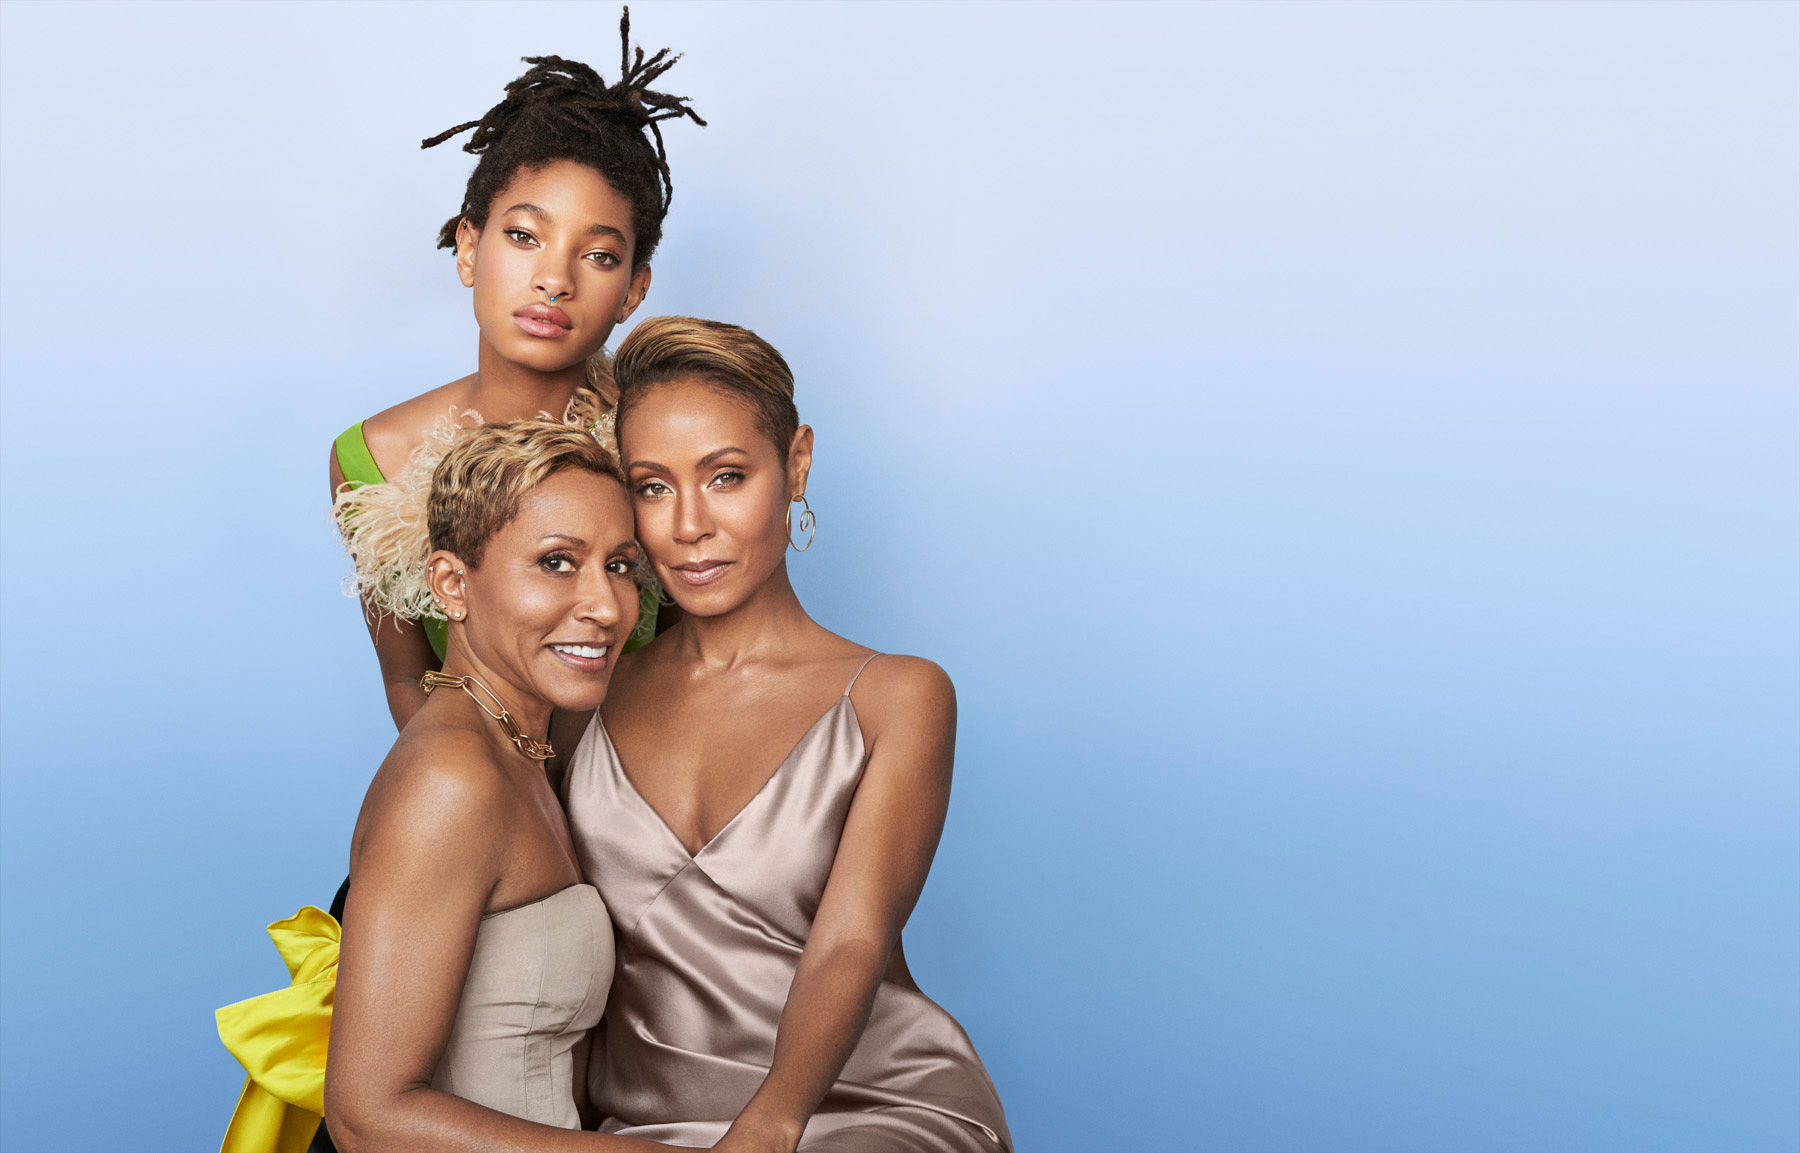 The New American Dynasty - Jada Pinkett-Smith, Willow Smith & Adreinne Banfield-Norris